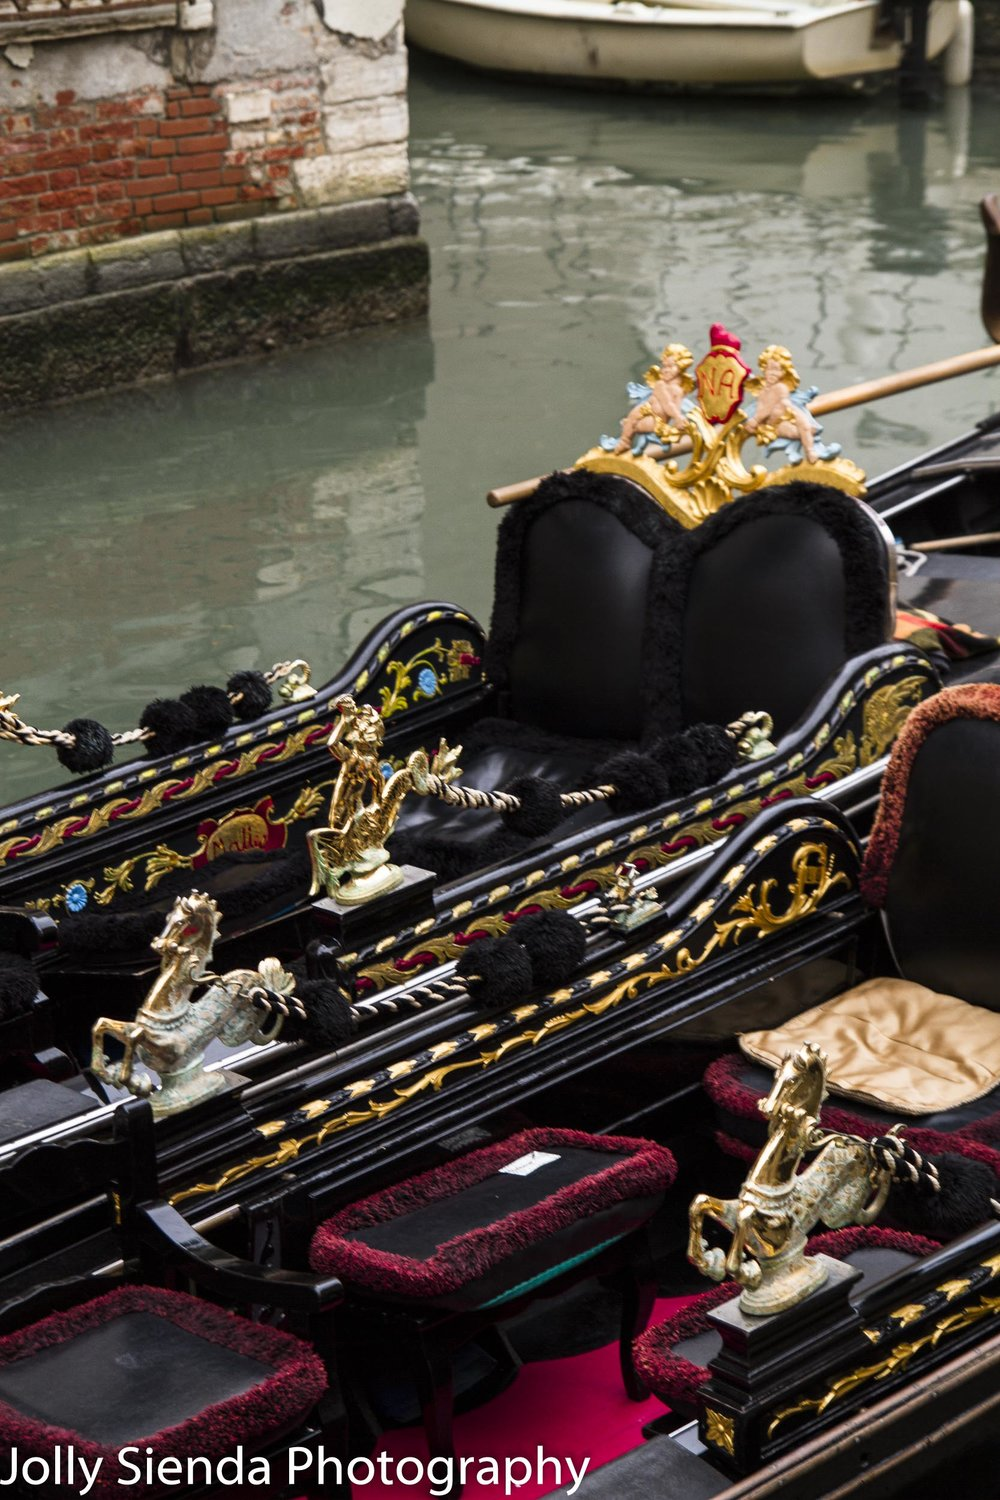 Artistic gondola interiors with golden seahorses and lovers cres